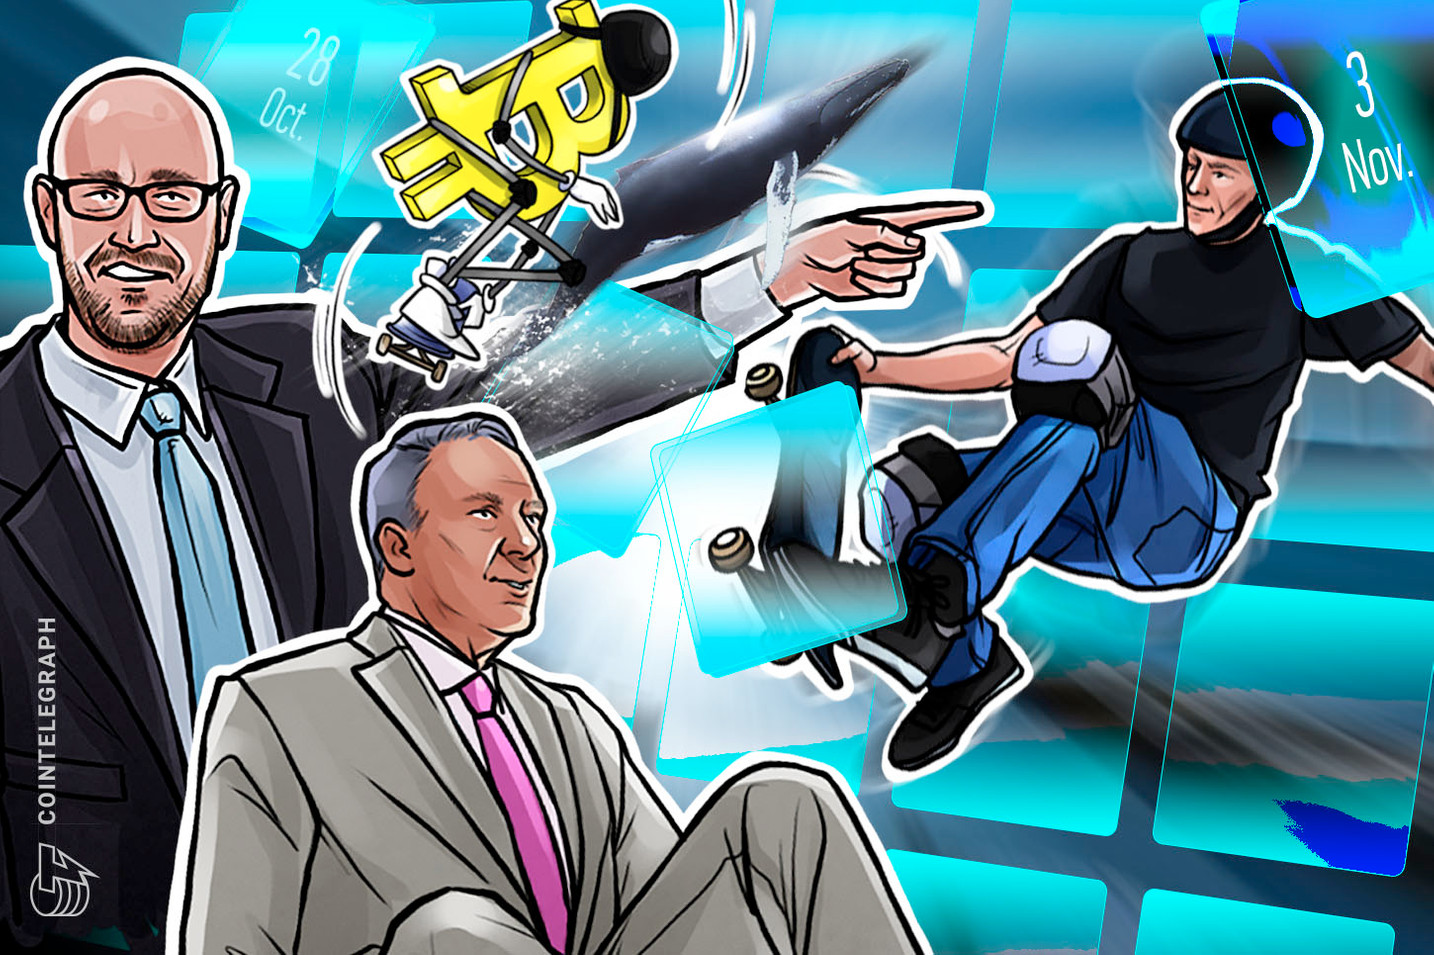 BitMEX Chaos, Cold Wallet Calamity, Germany Hates Crypto: Hodler's Digest, Oct. 28–Nov. 3